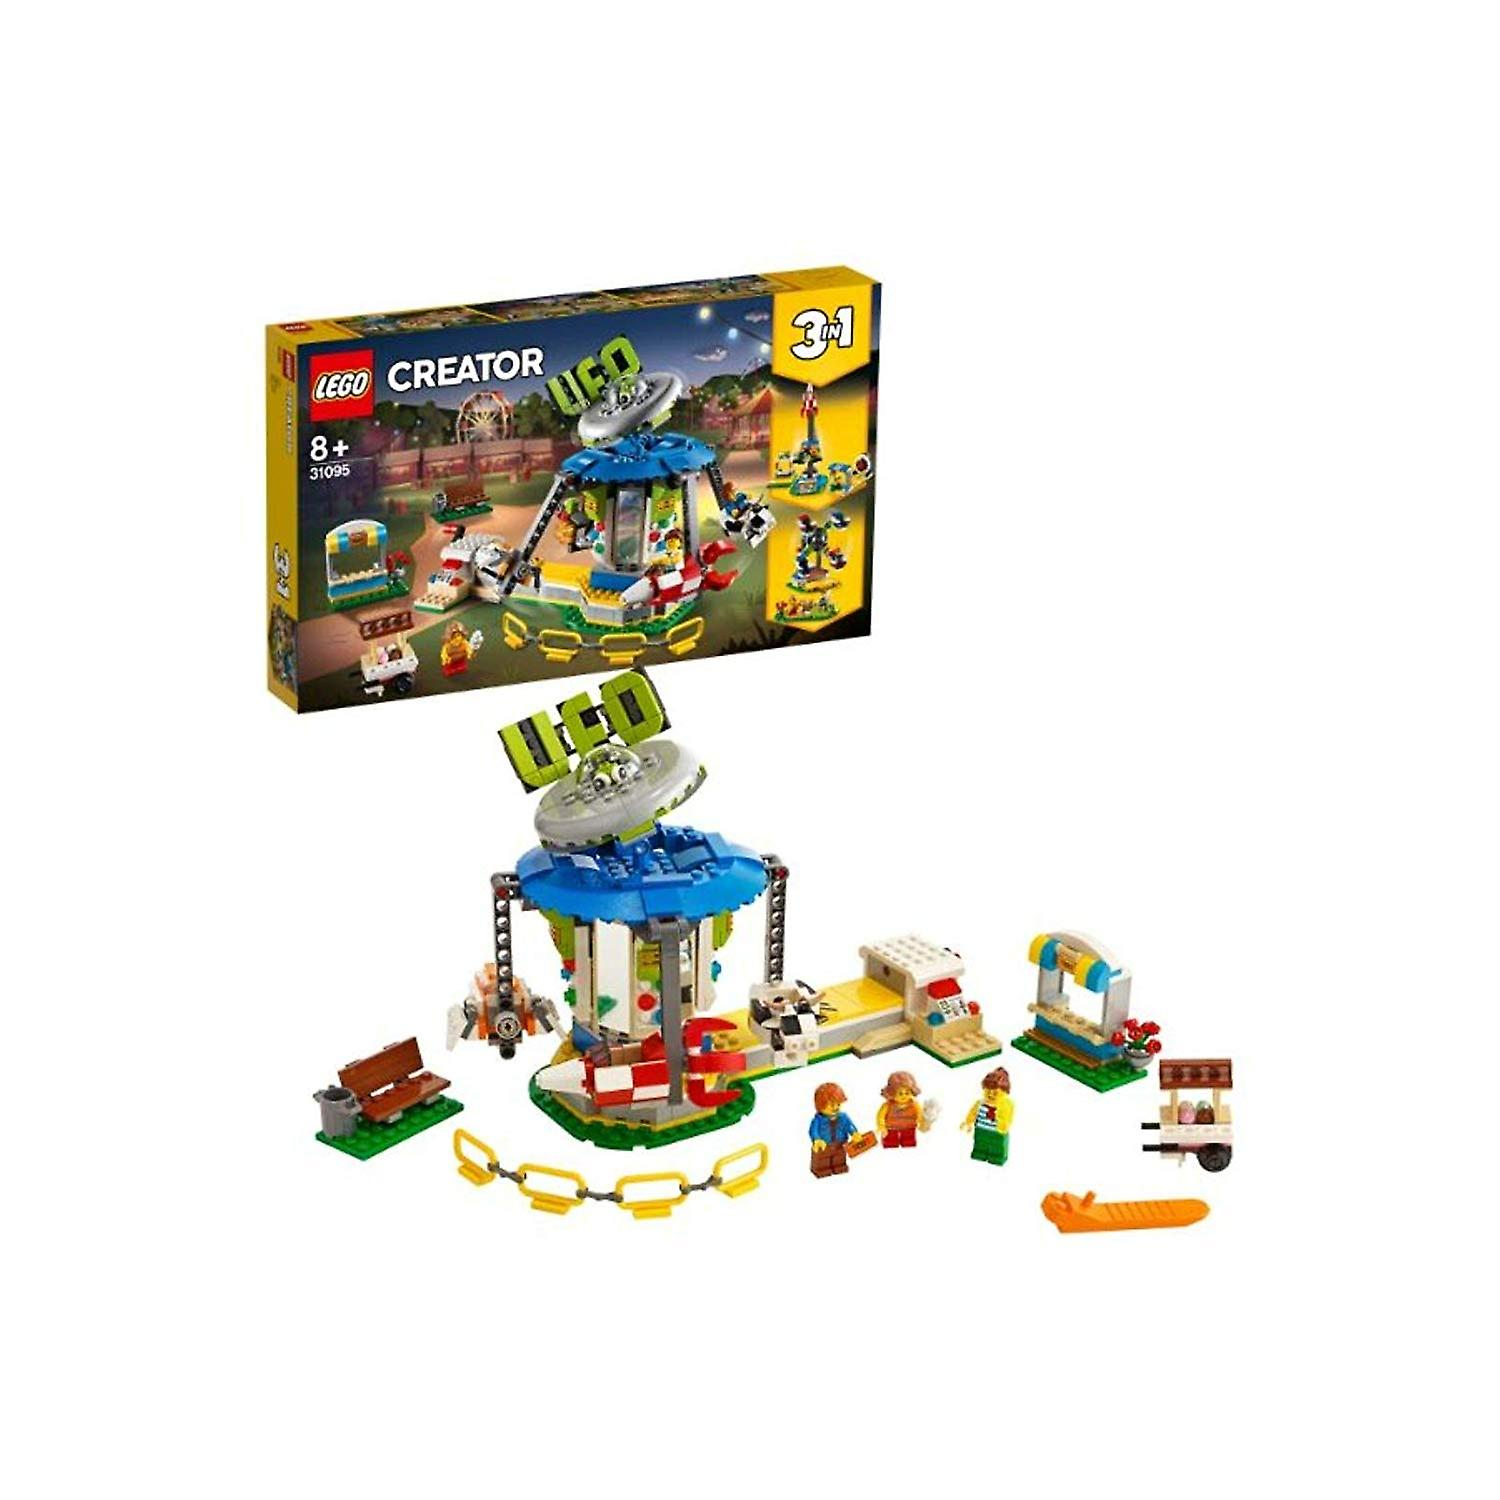 voiturerousel LEGO 31095 Creator 3in1 Fairground